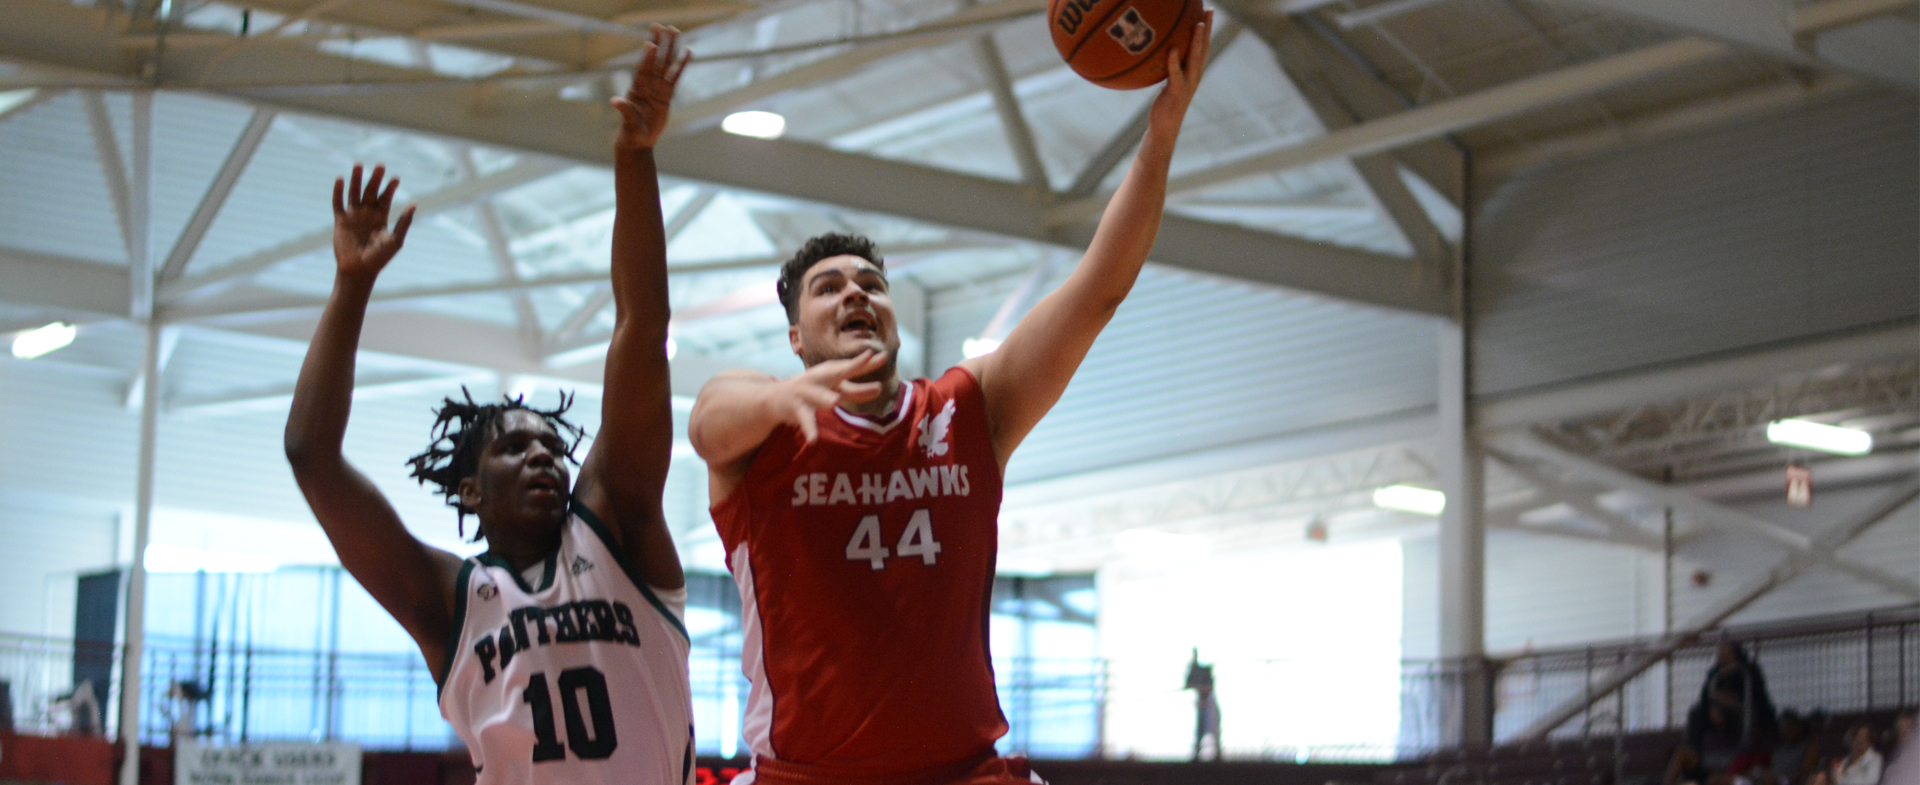 Sea-Hawks Look To Solidify Playoff Position